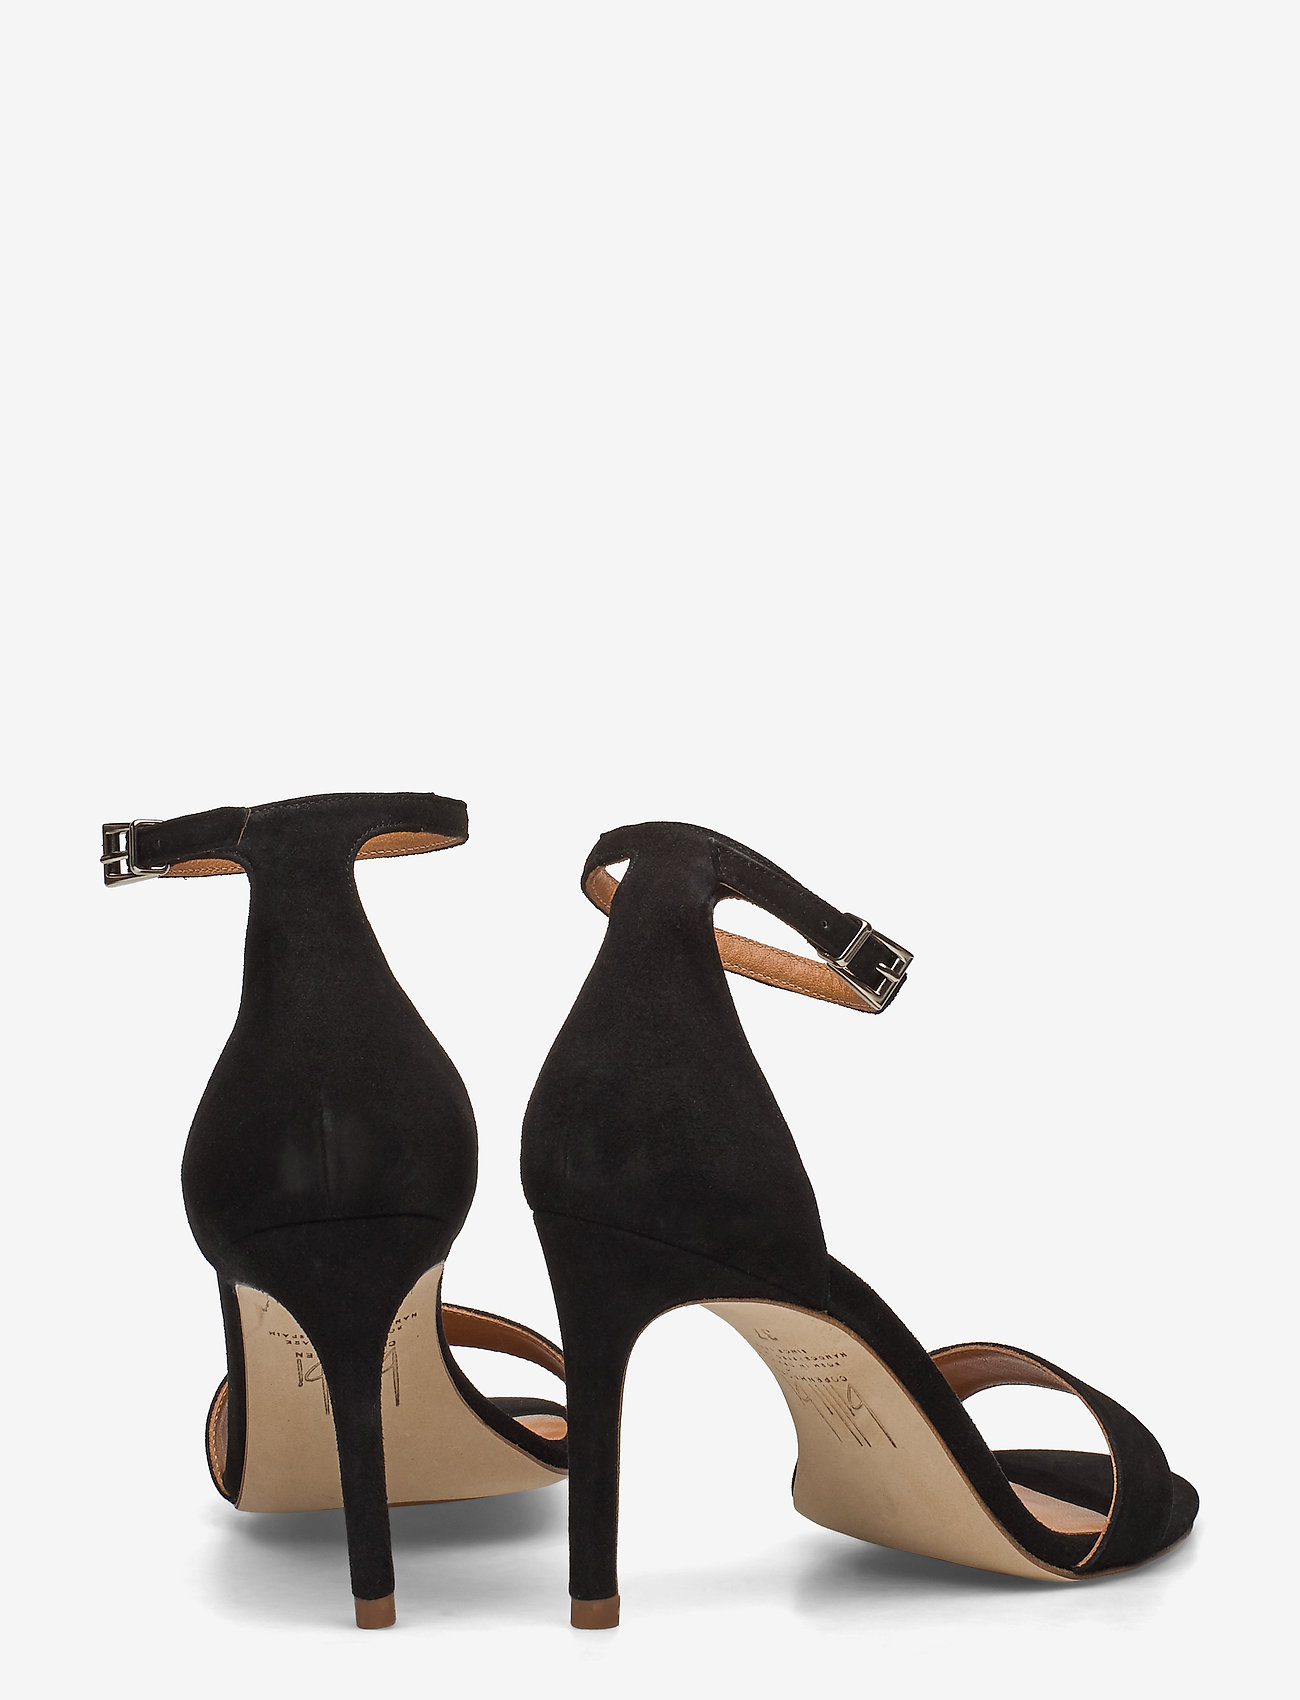 14451 Sandals (Black Suede 50) - Billi Bi